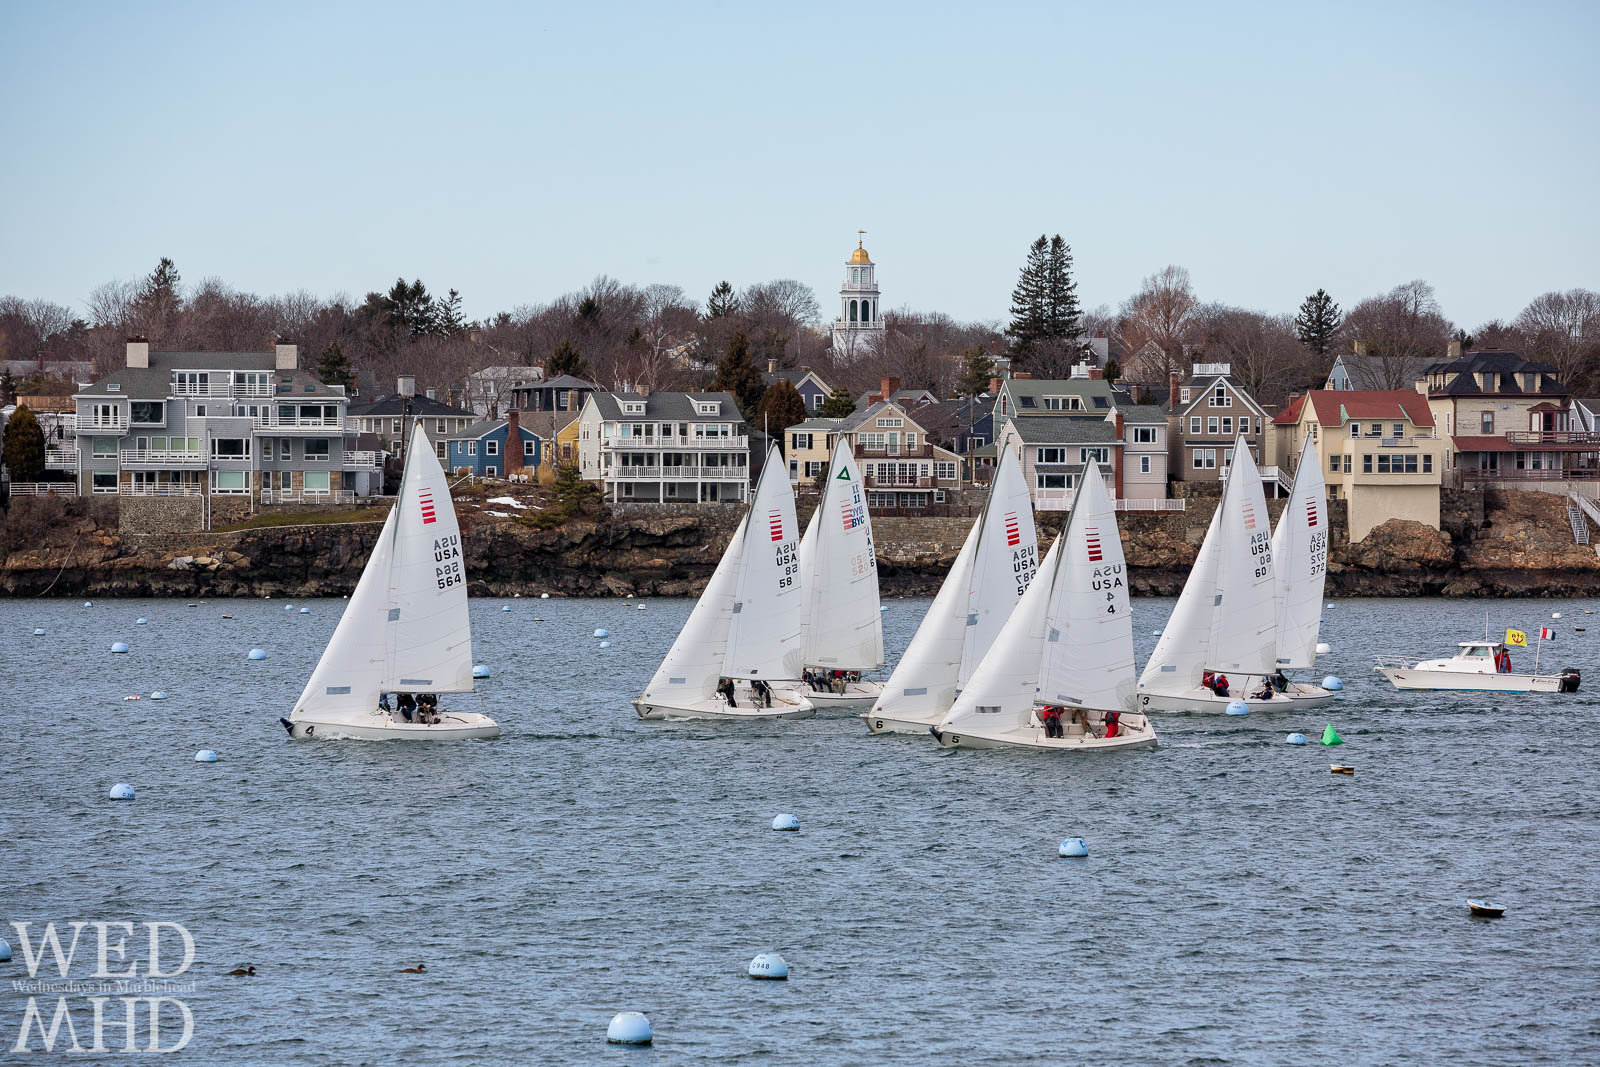 Frostbile sailing takes place in Marblehead Harbor each Winter and is captured here with the boats racing by Old North Church